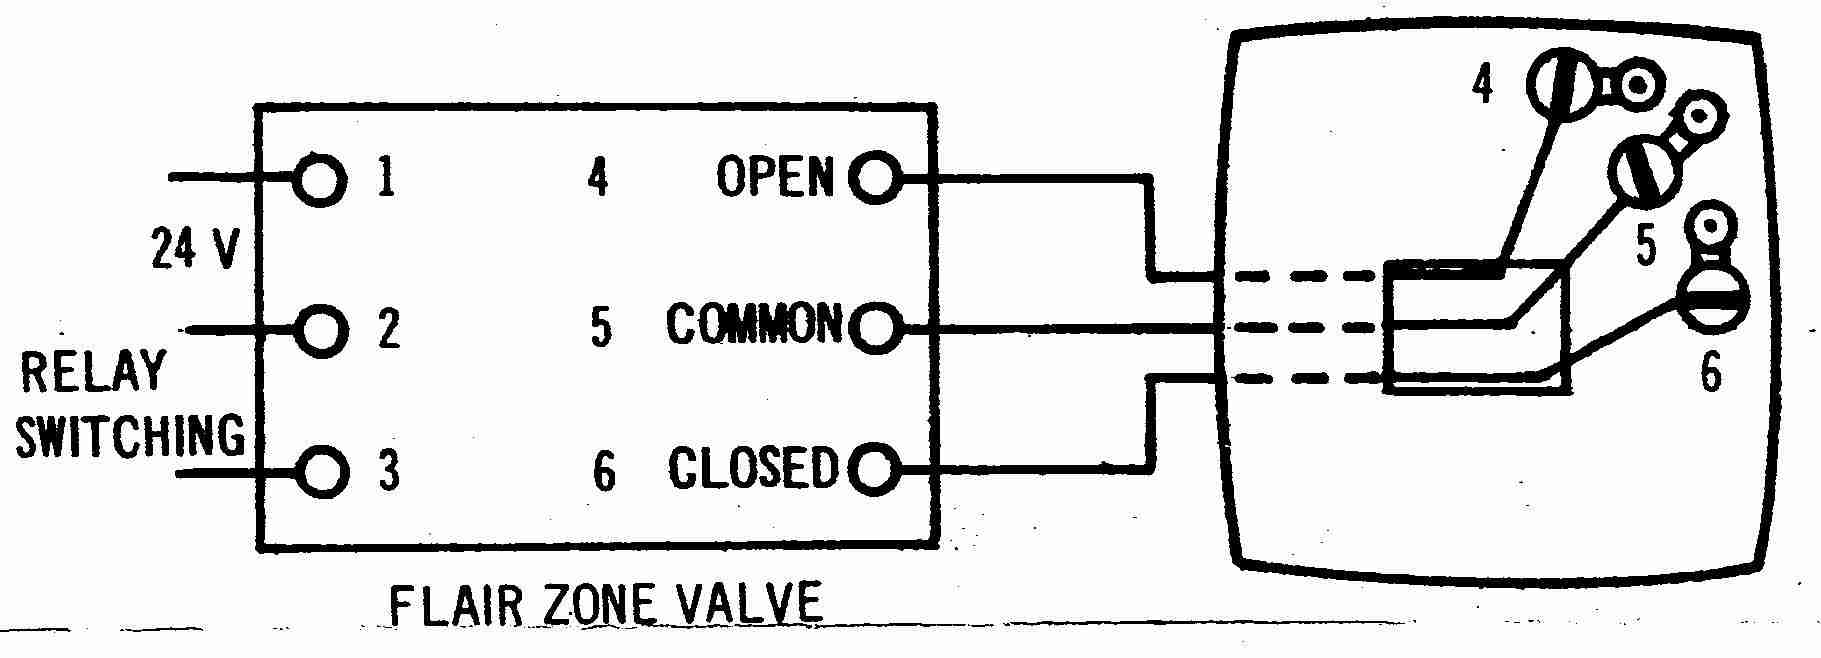 Honeywell Zone Valve Wiring Diagram Electrical Schematics For A Thermostat Installation Instructions Guide To Heating Solenoid